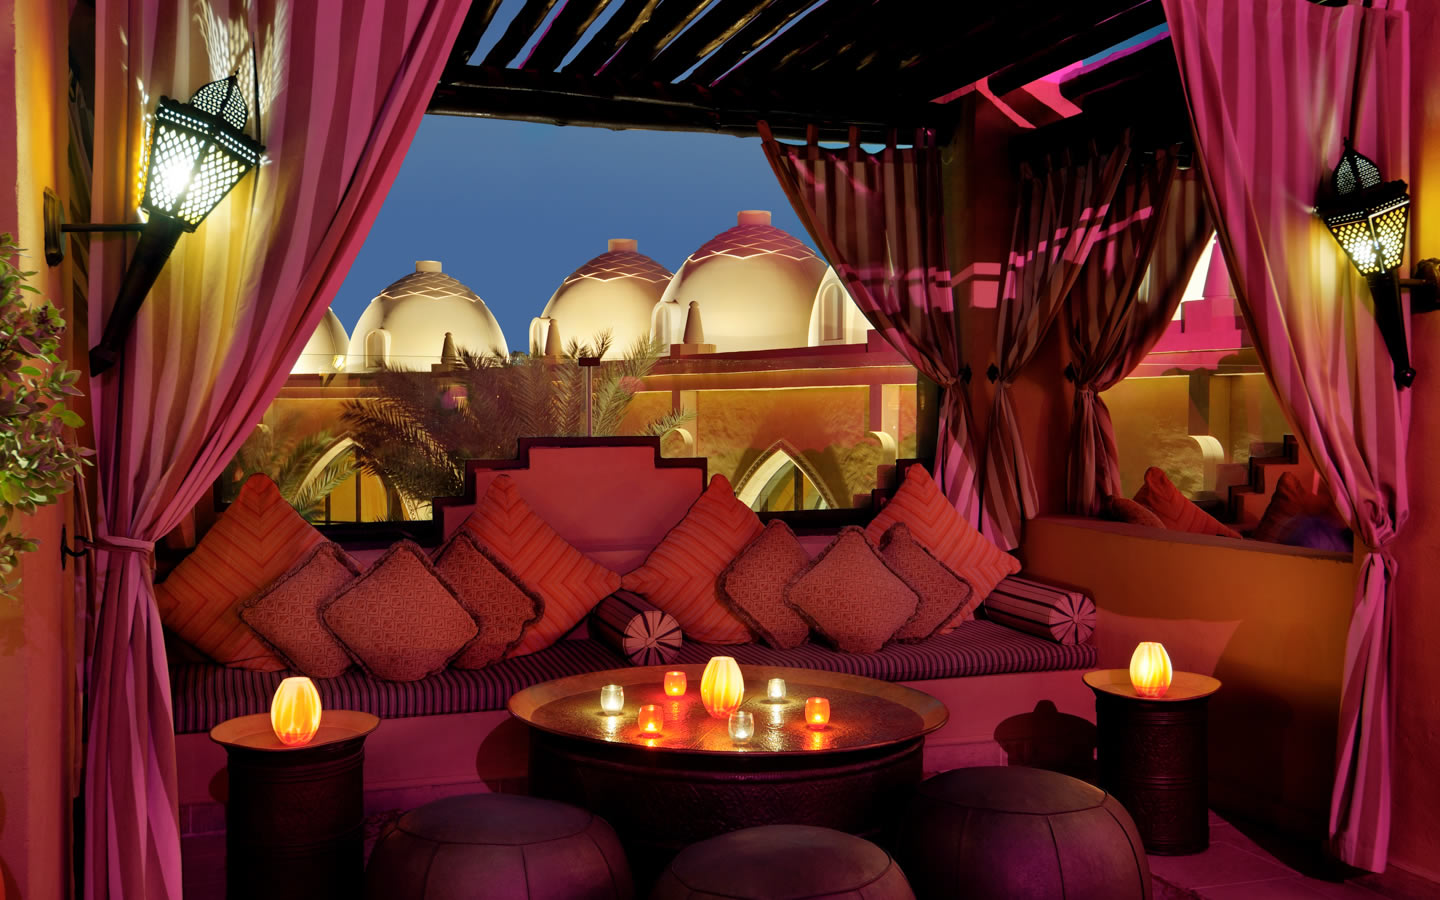 15 Best Outdoor Terraces in Dubai - The Rooftop Terrace - Arabian Court, One&Only Royal Mirage